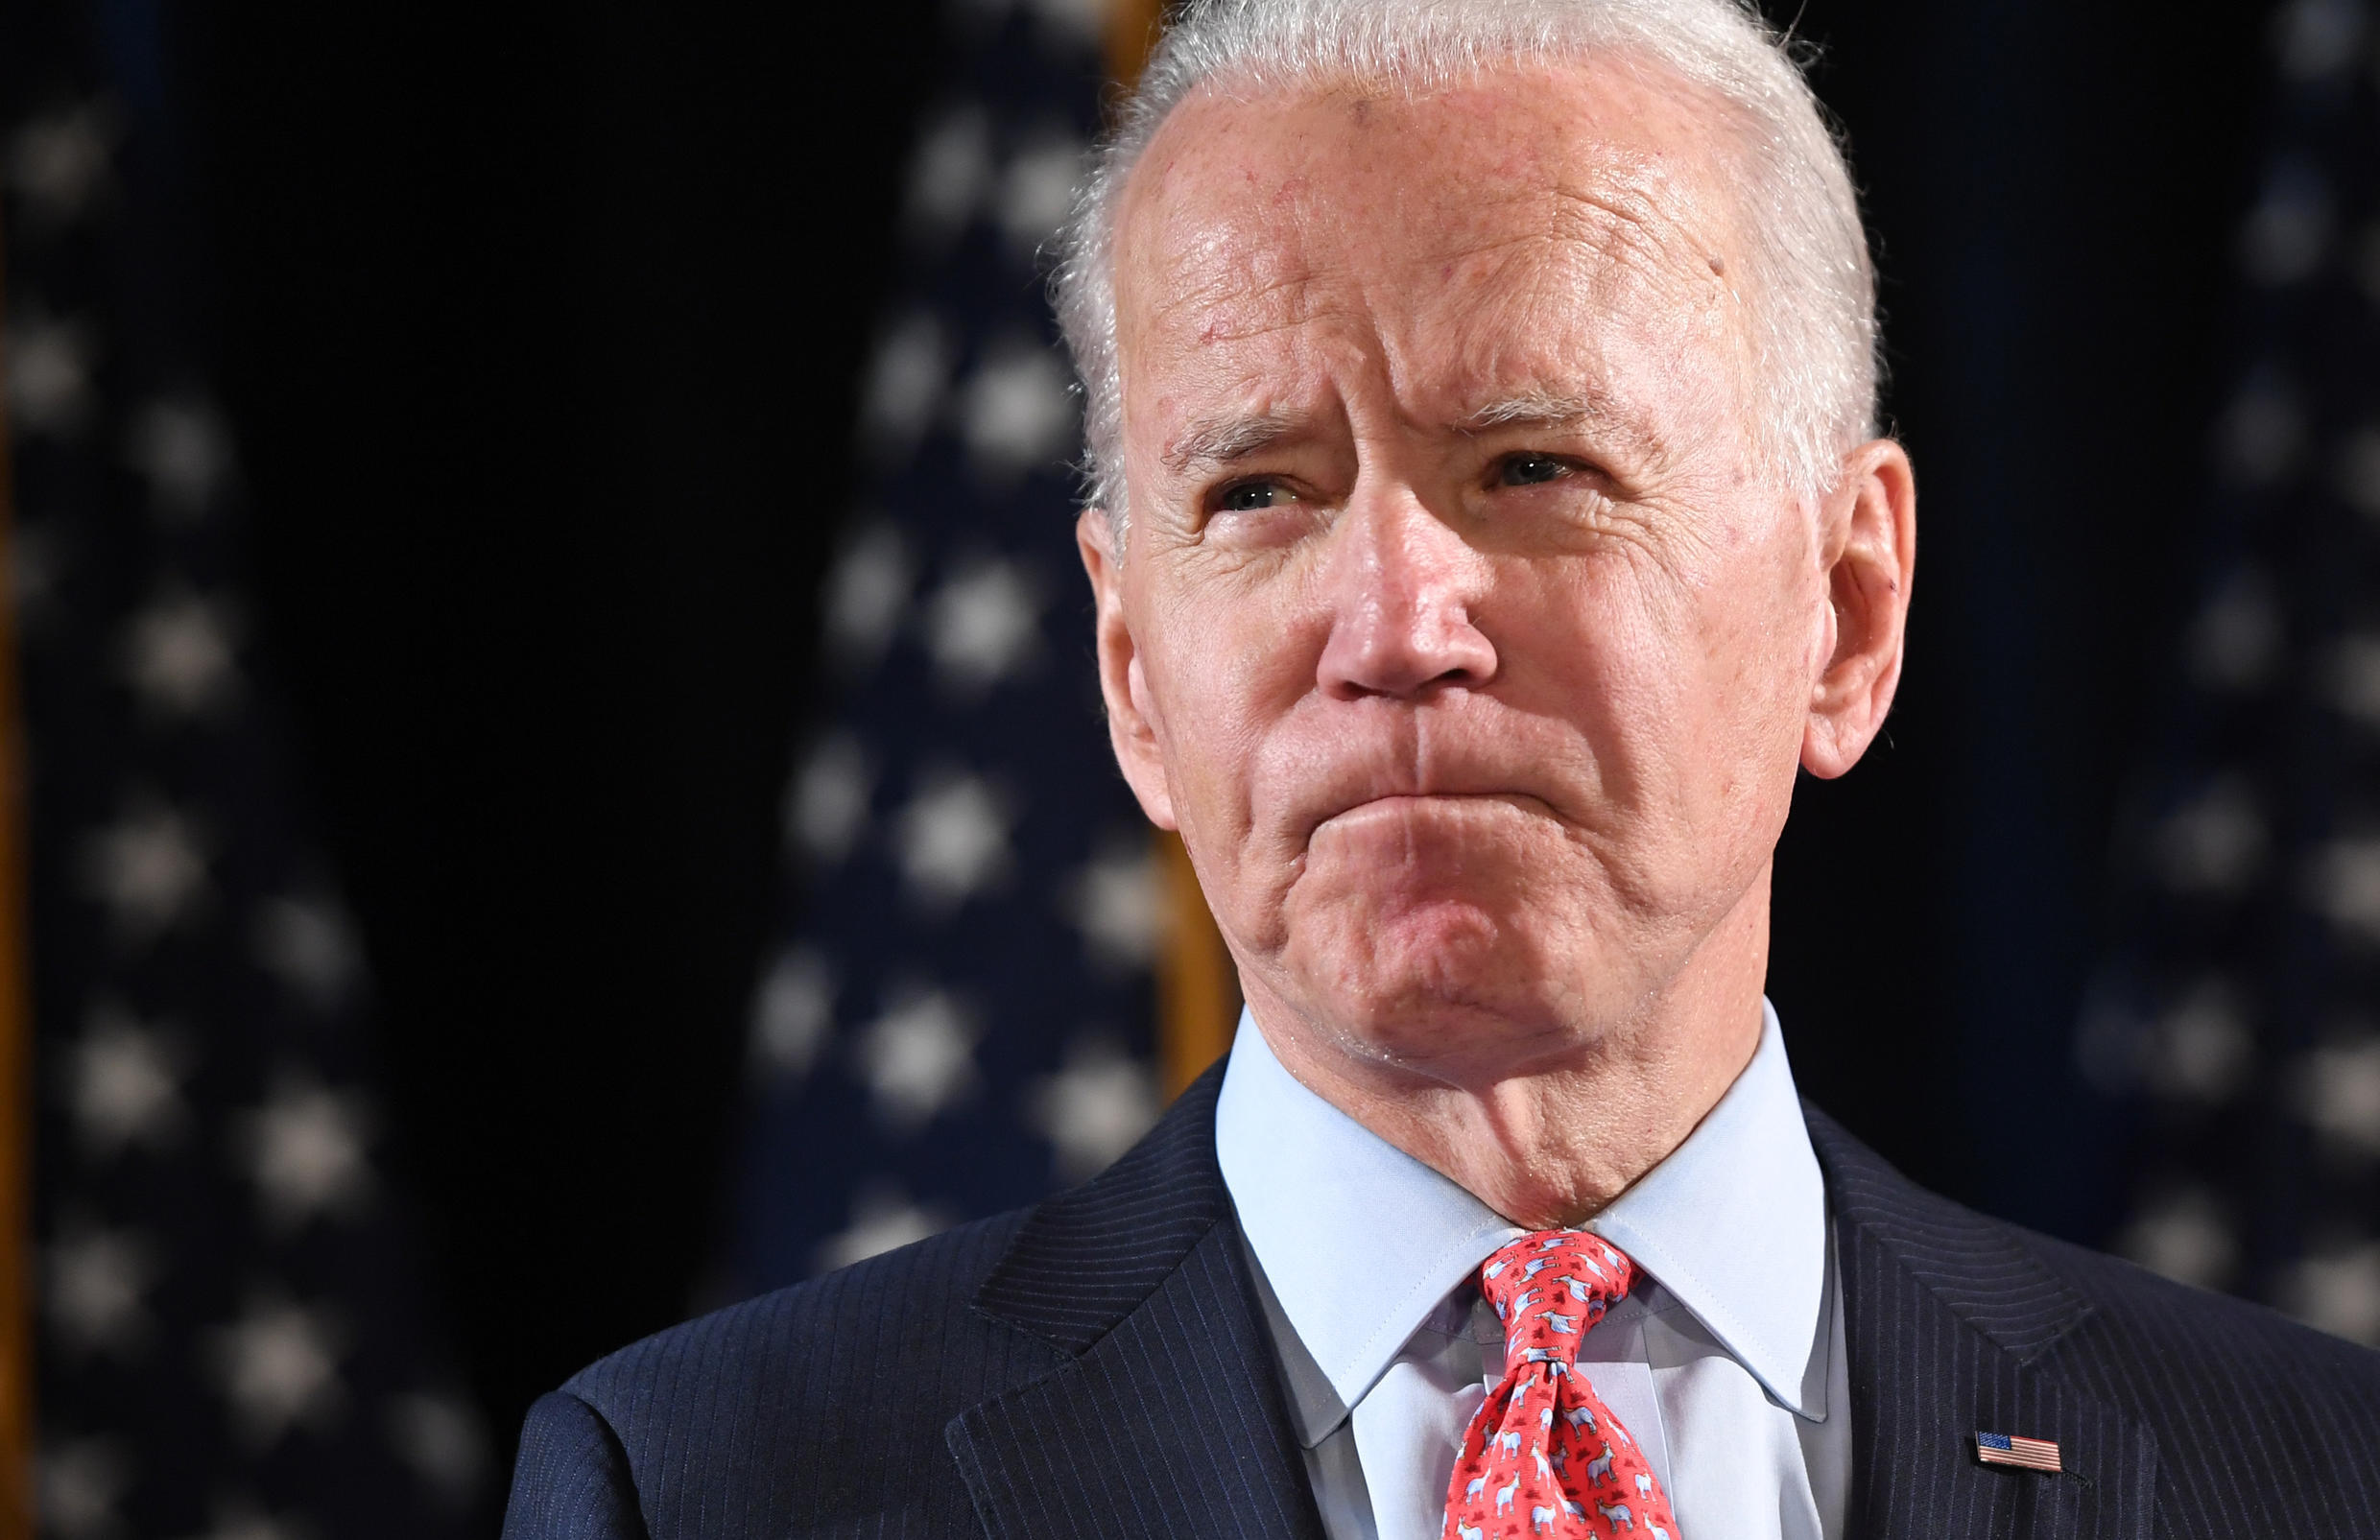 Former vice president Joe Biden, a candidate for the Democratic nominee for president, pictured in a file photo taken on March 12.